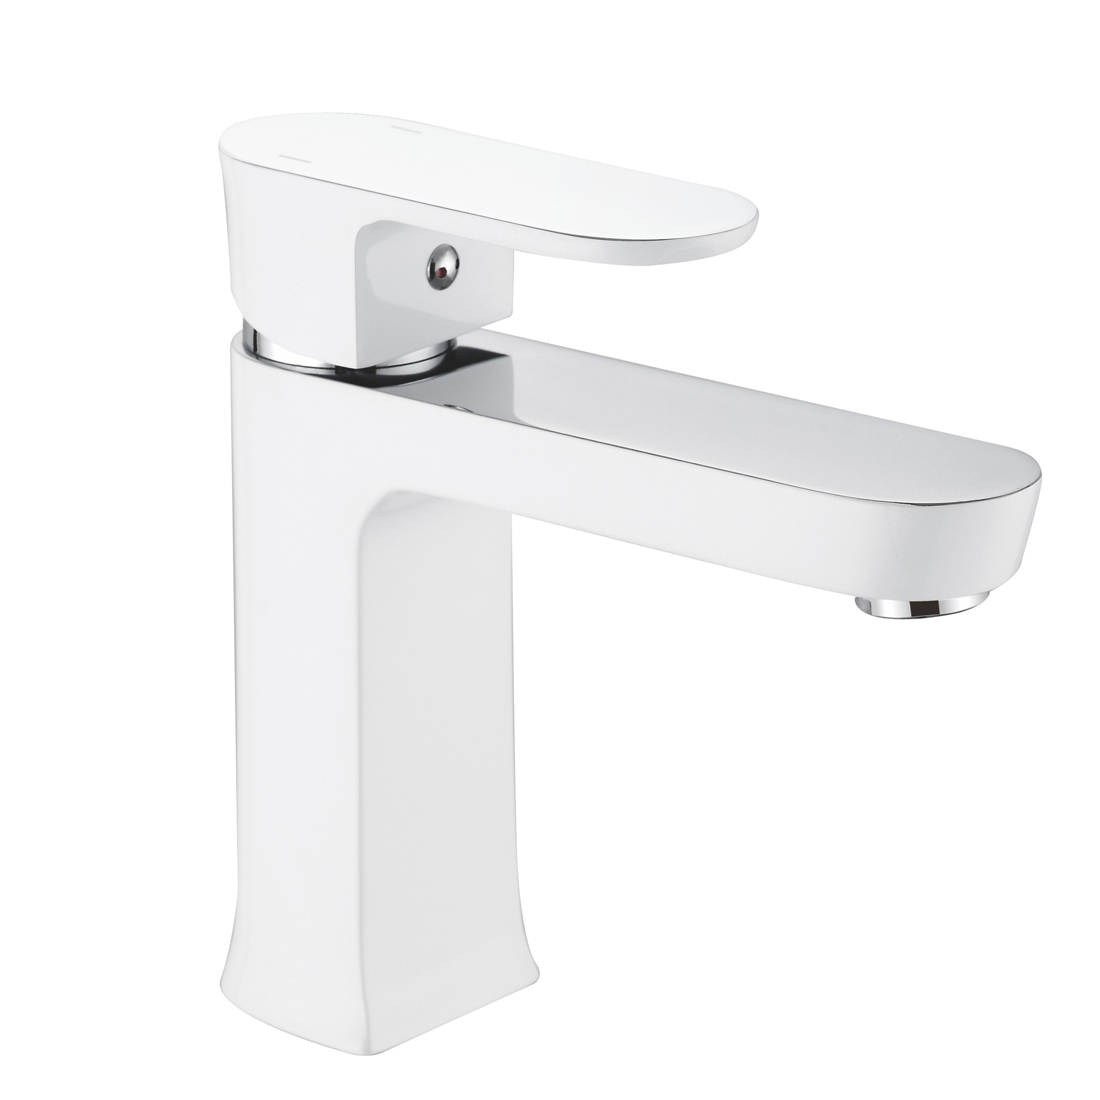 FLG White Bathroom Faucet